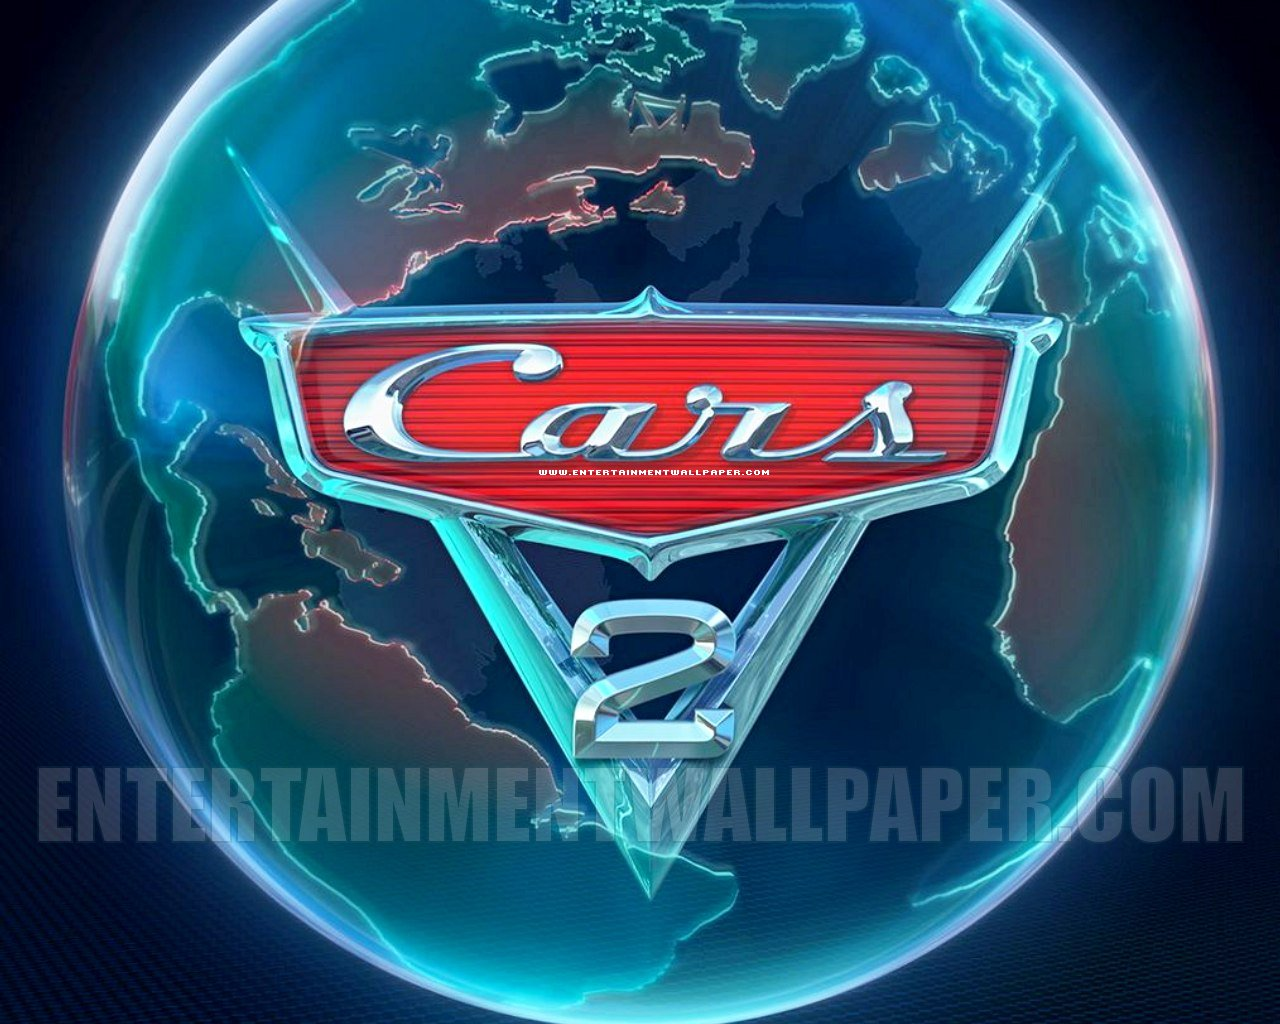 cars 2 movie trailer download cars 2 wallpapers disney cars 2 trailer reviews. Black Bedroom Furniture Sets. Home Design Ideas